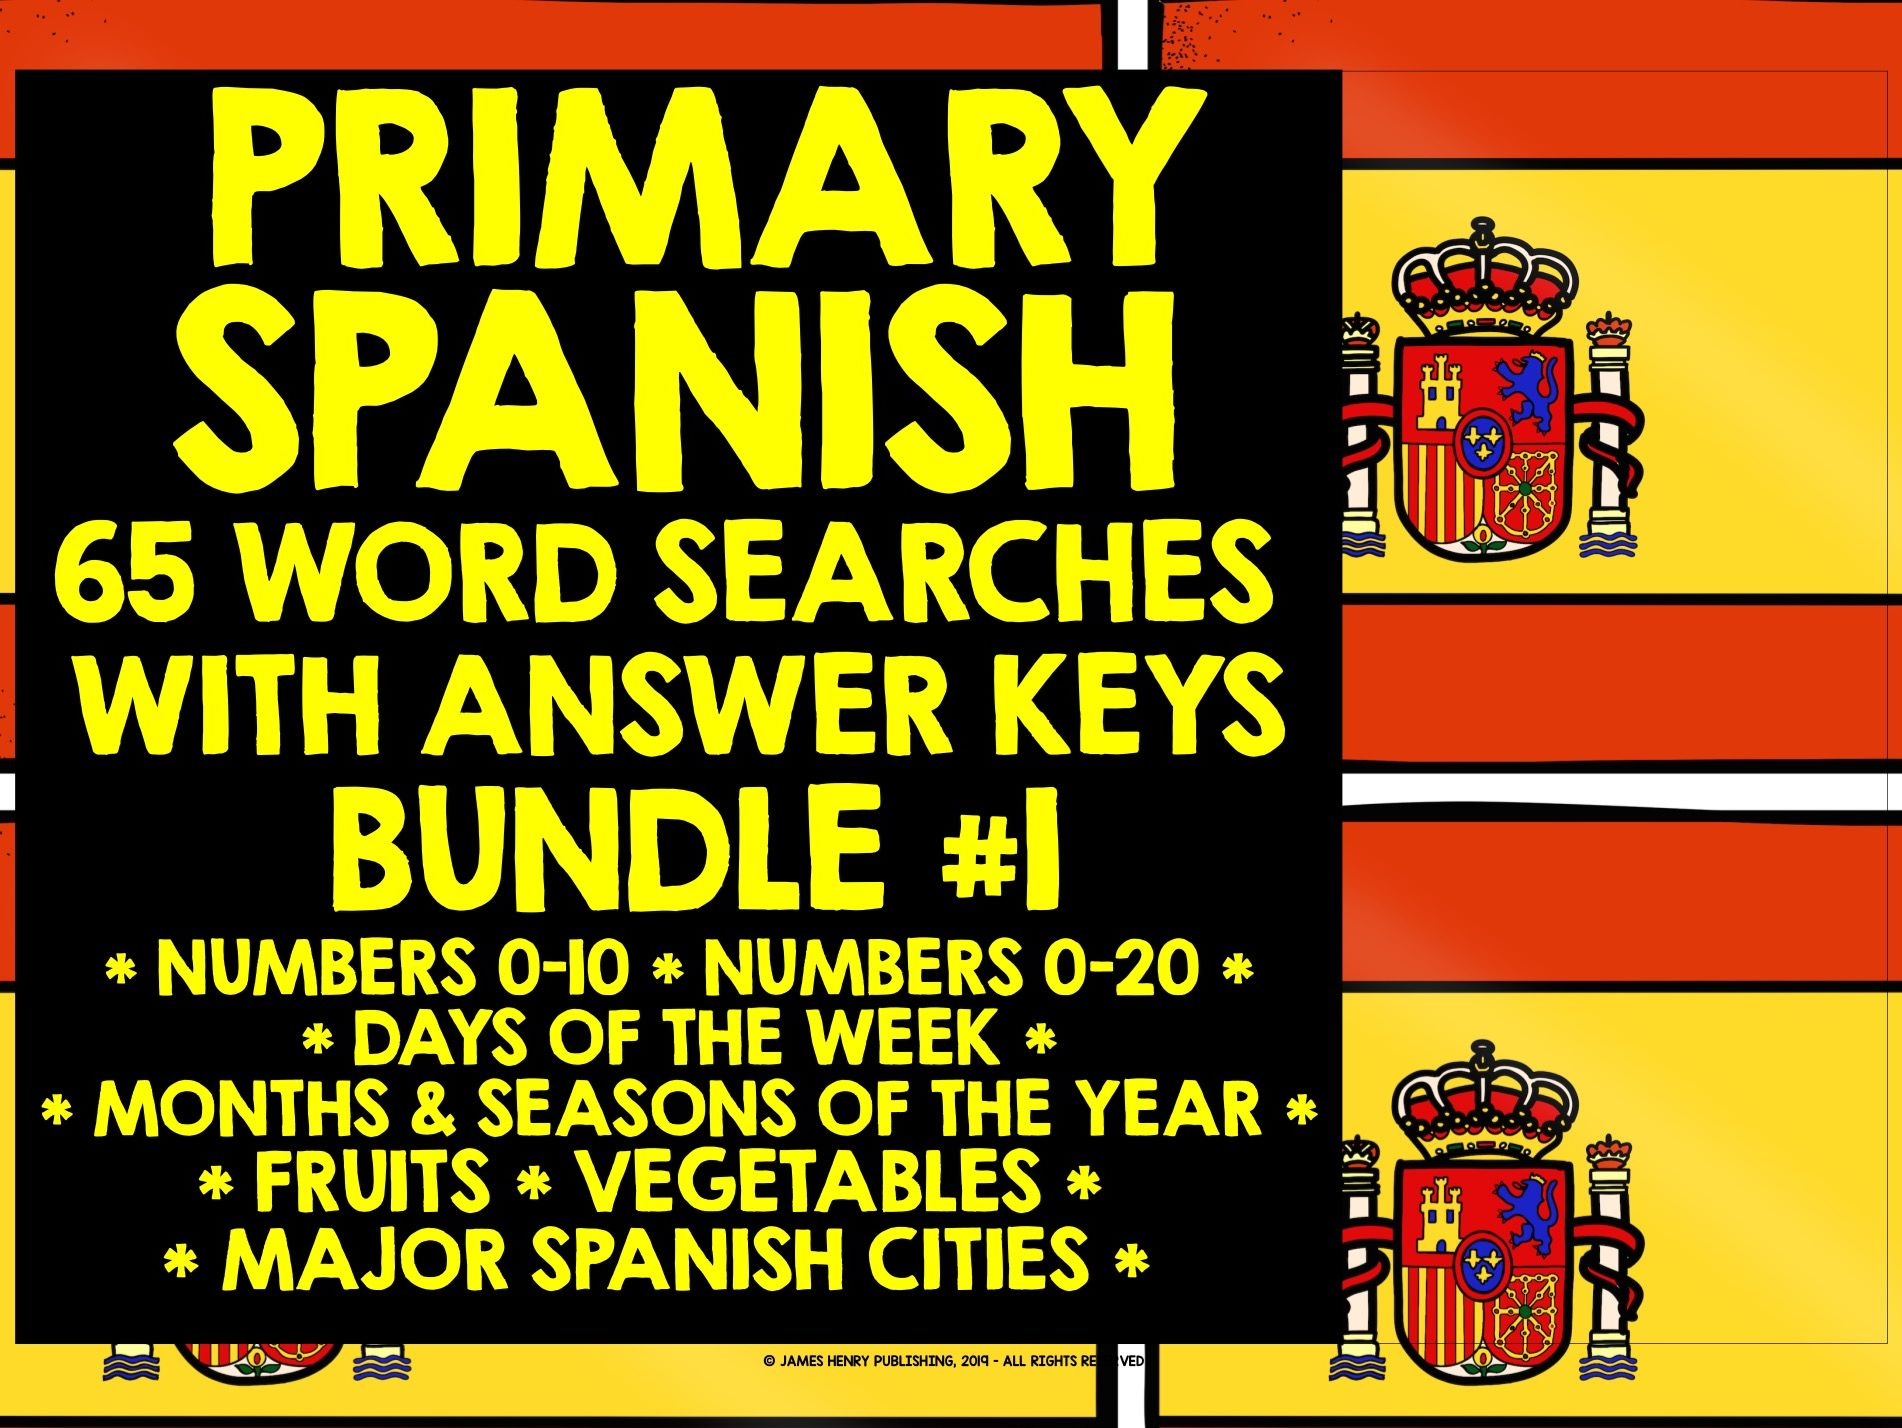 PRIMARY SPANISH WORD SEARCHES BUNDLE #1